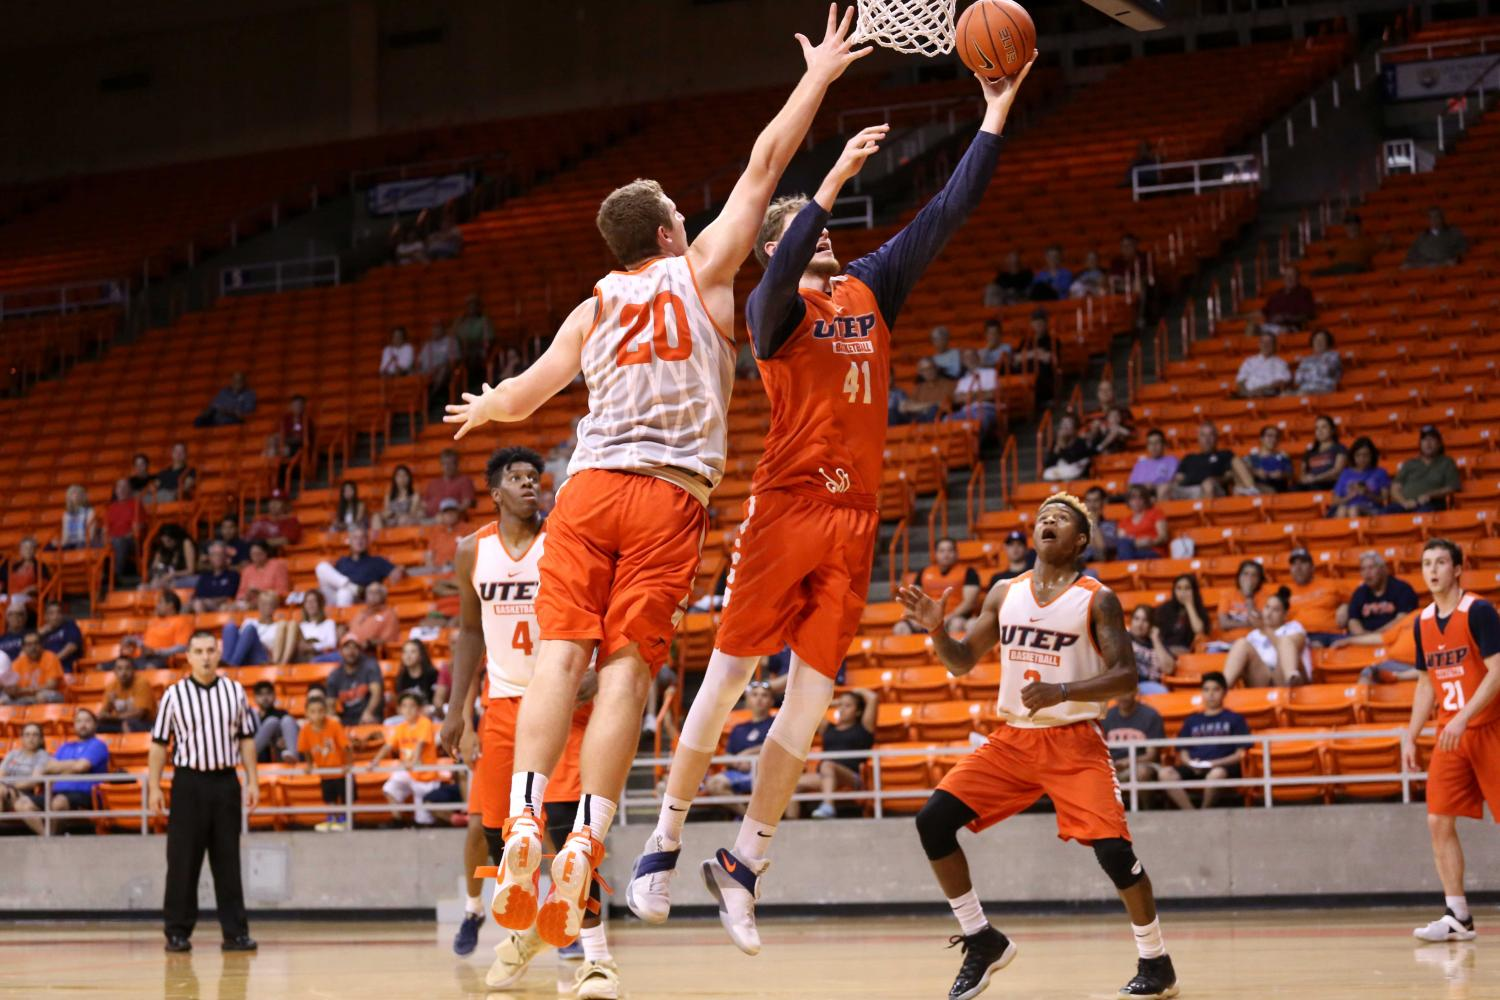 UTEP+basketball+veterans+prevail+over+newcomers+in+scrimmage